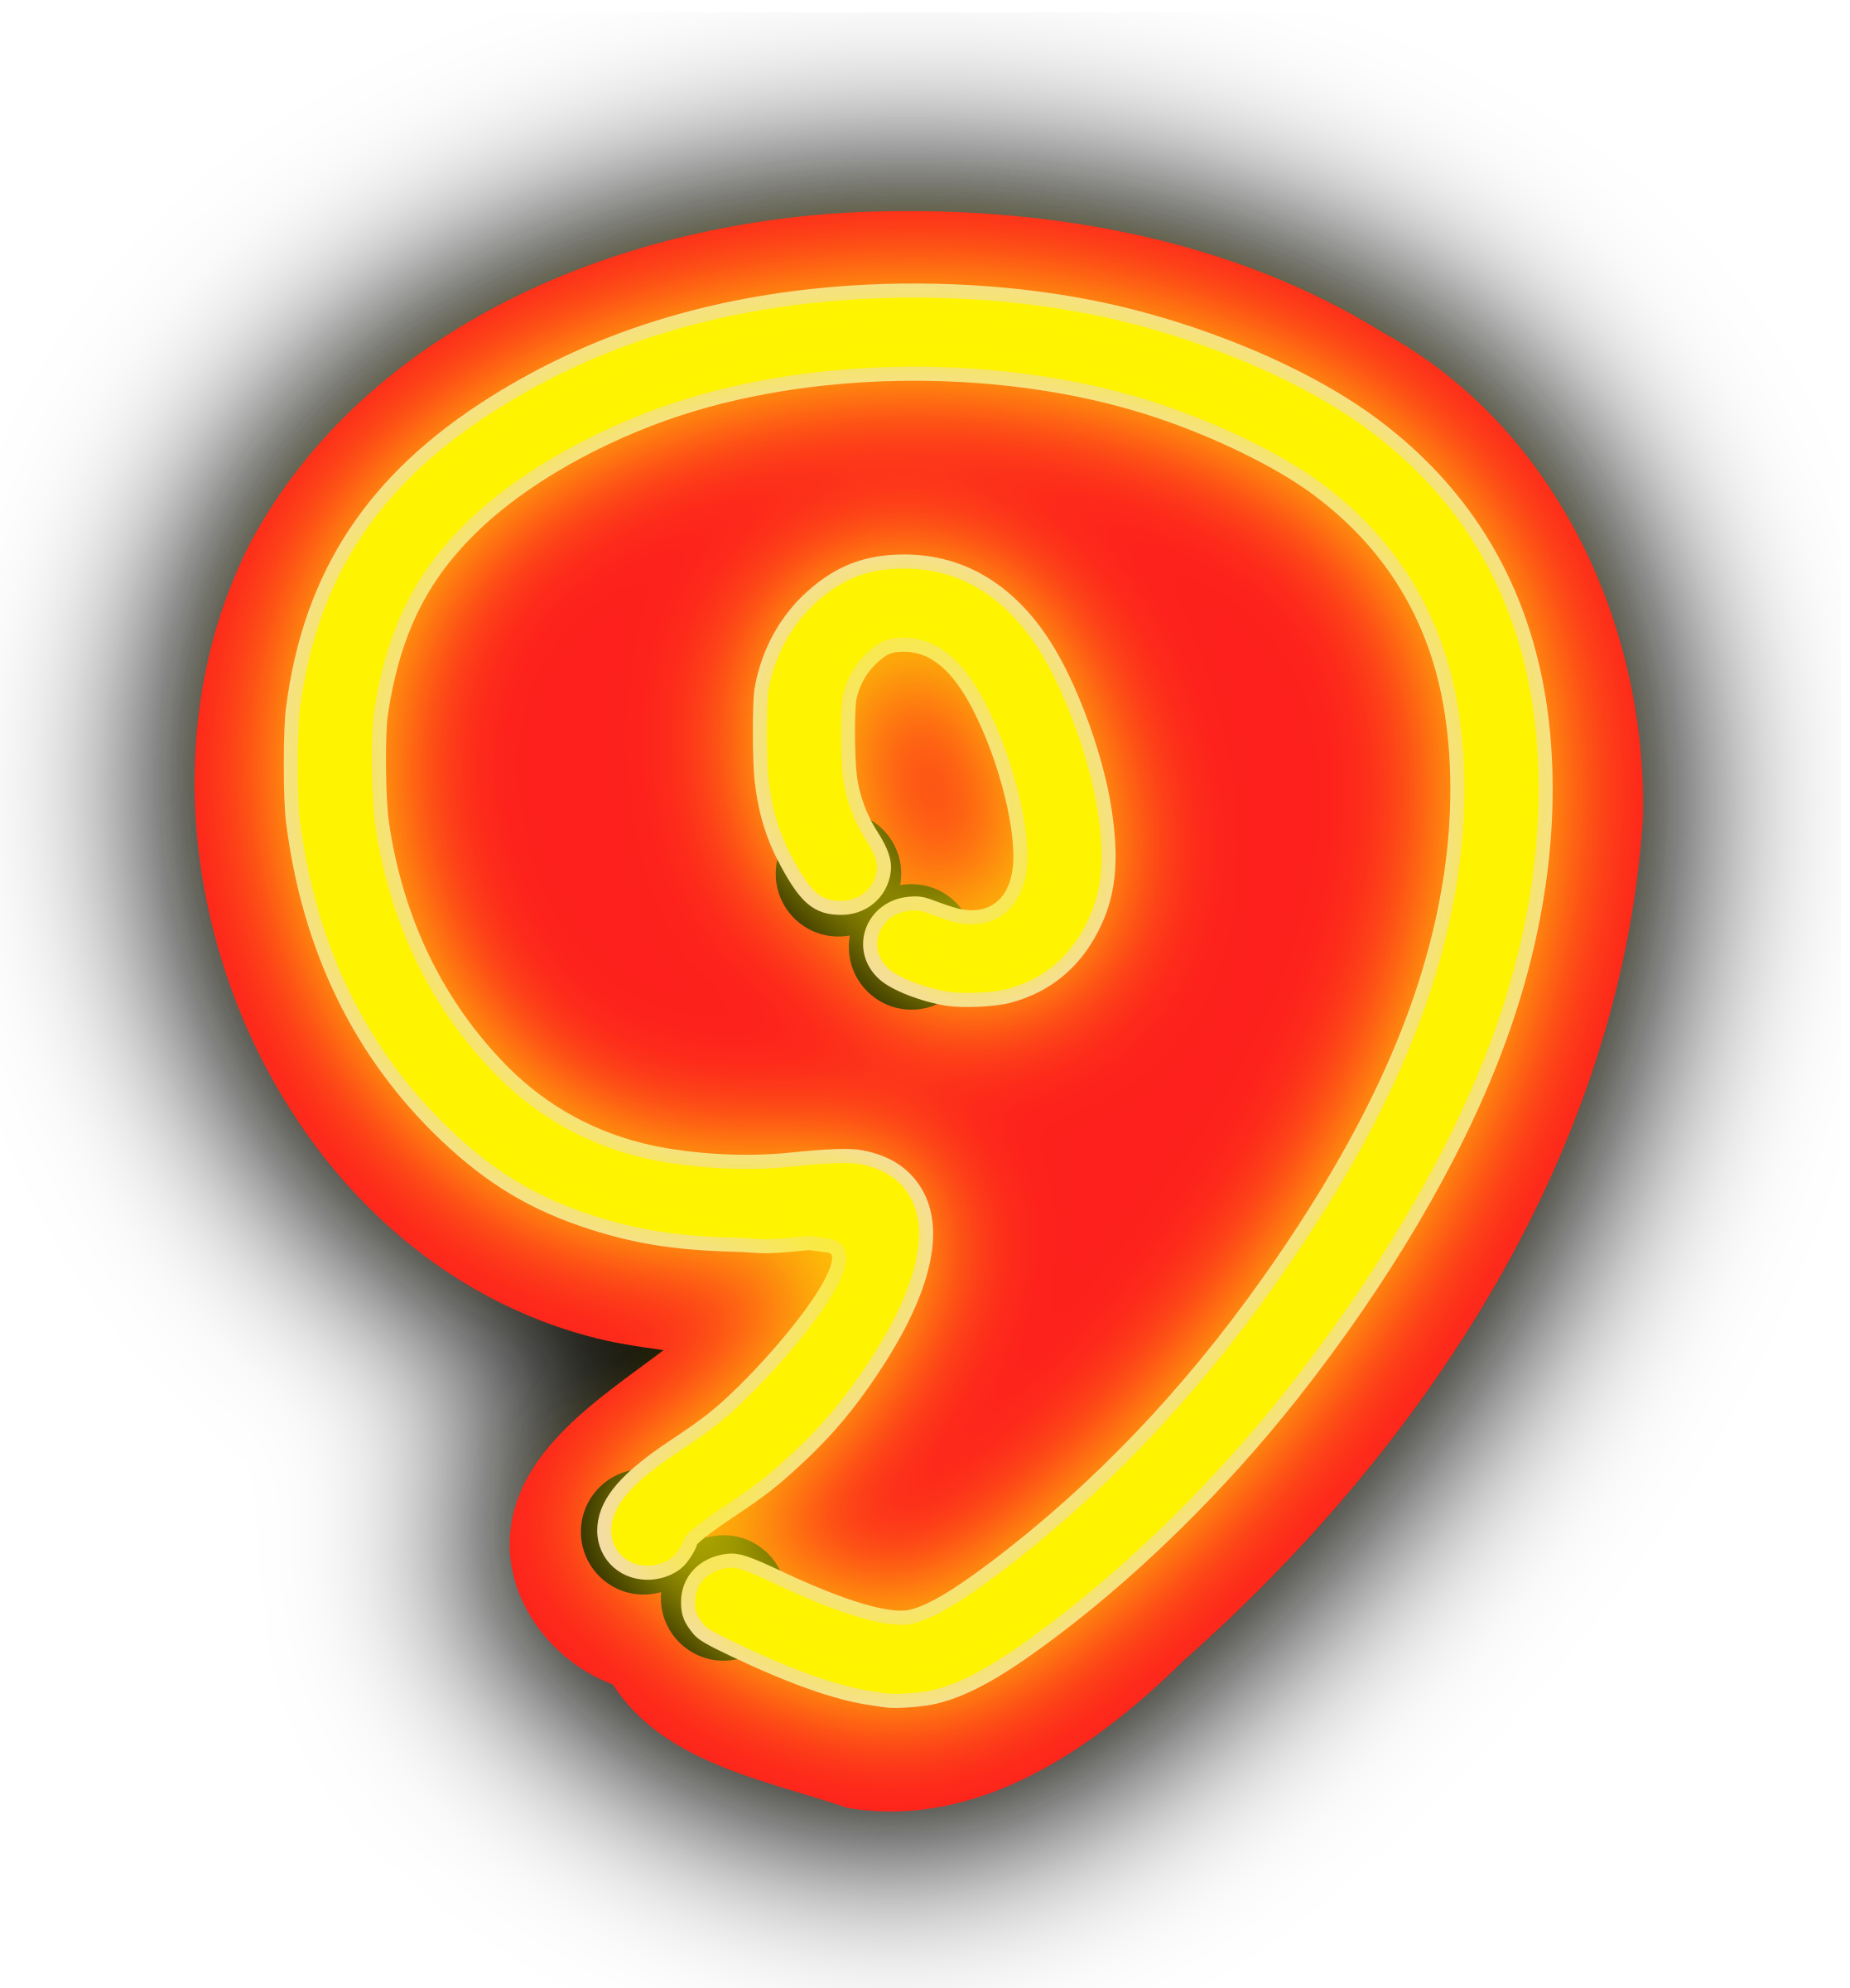 Clipart - Neon Numerals-9 on